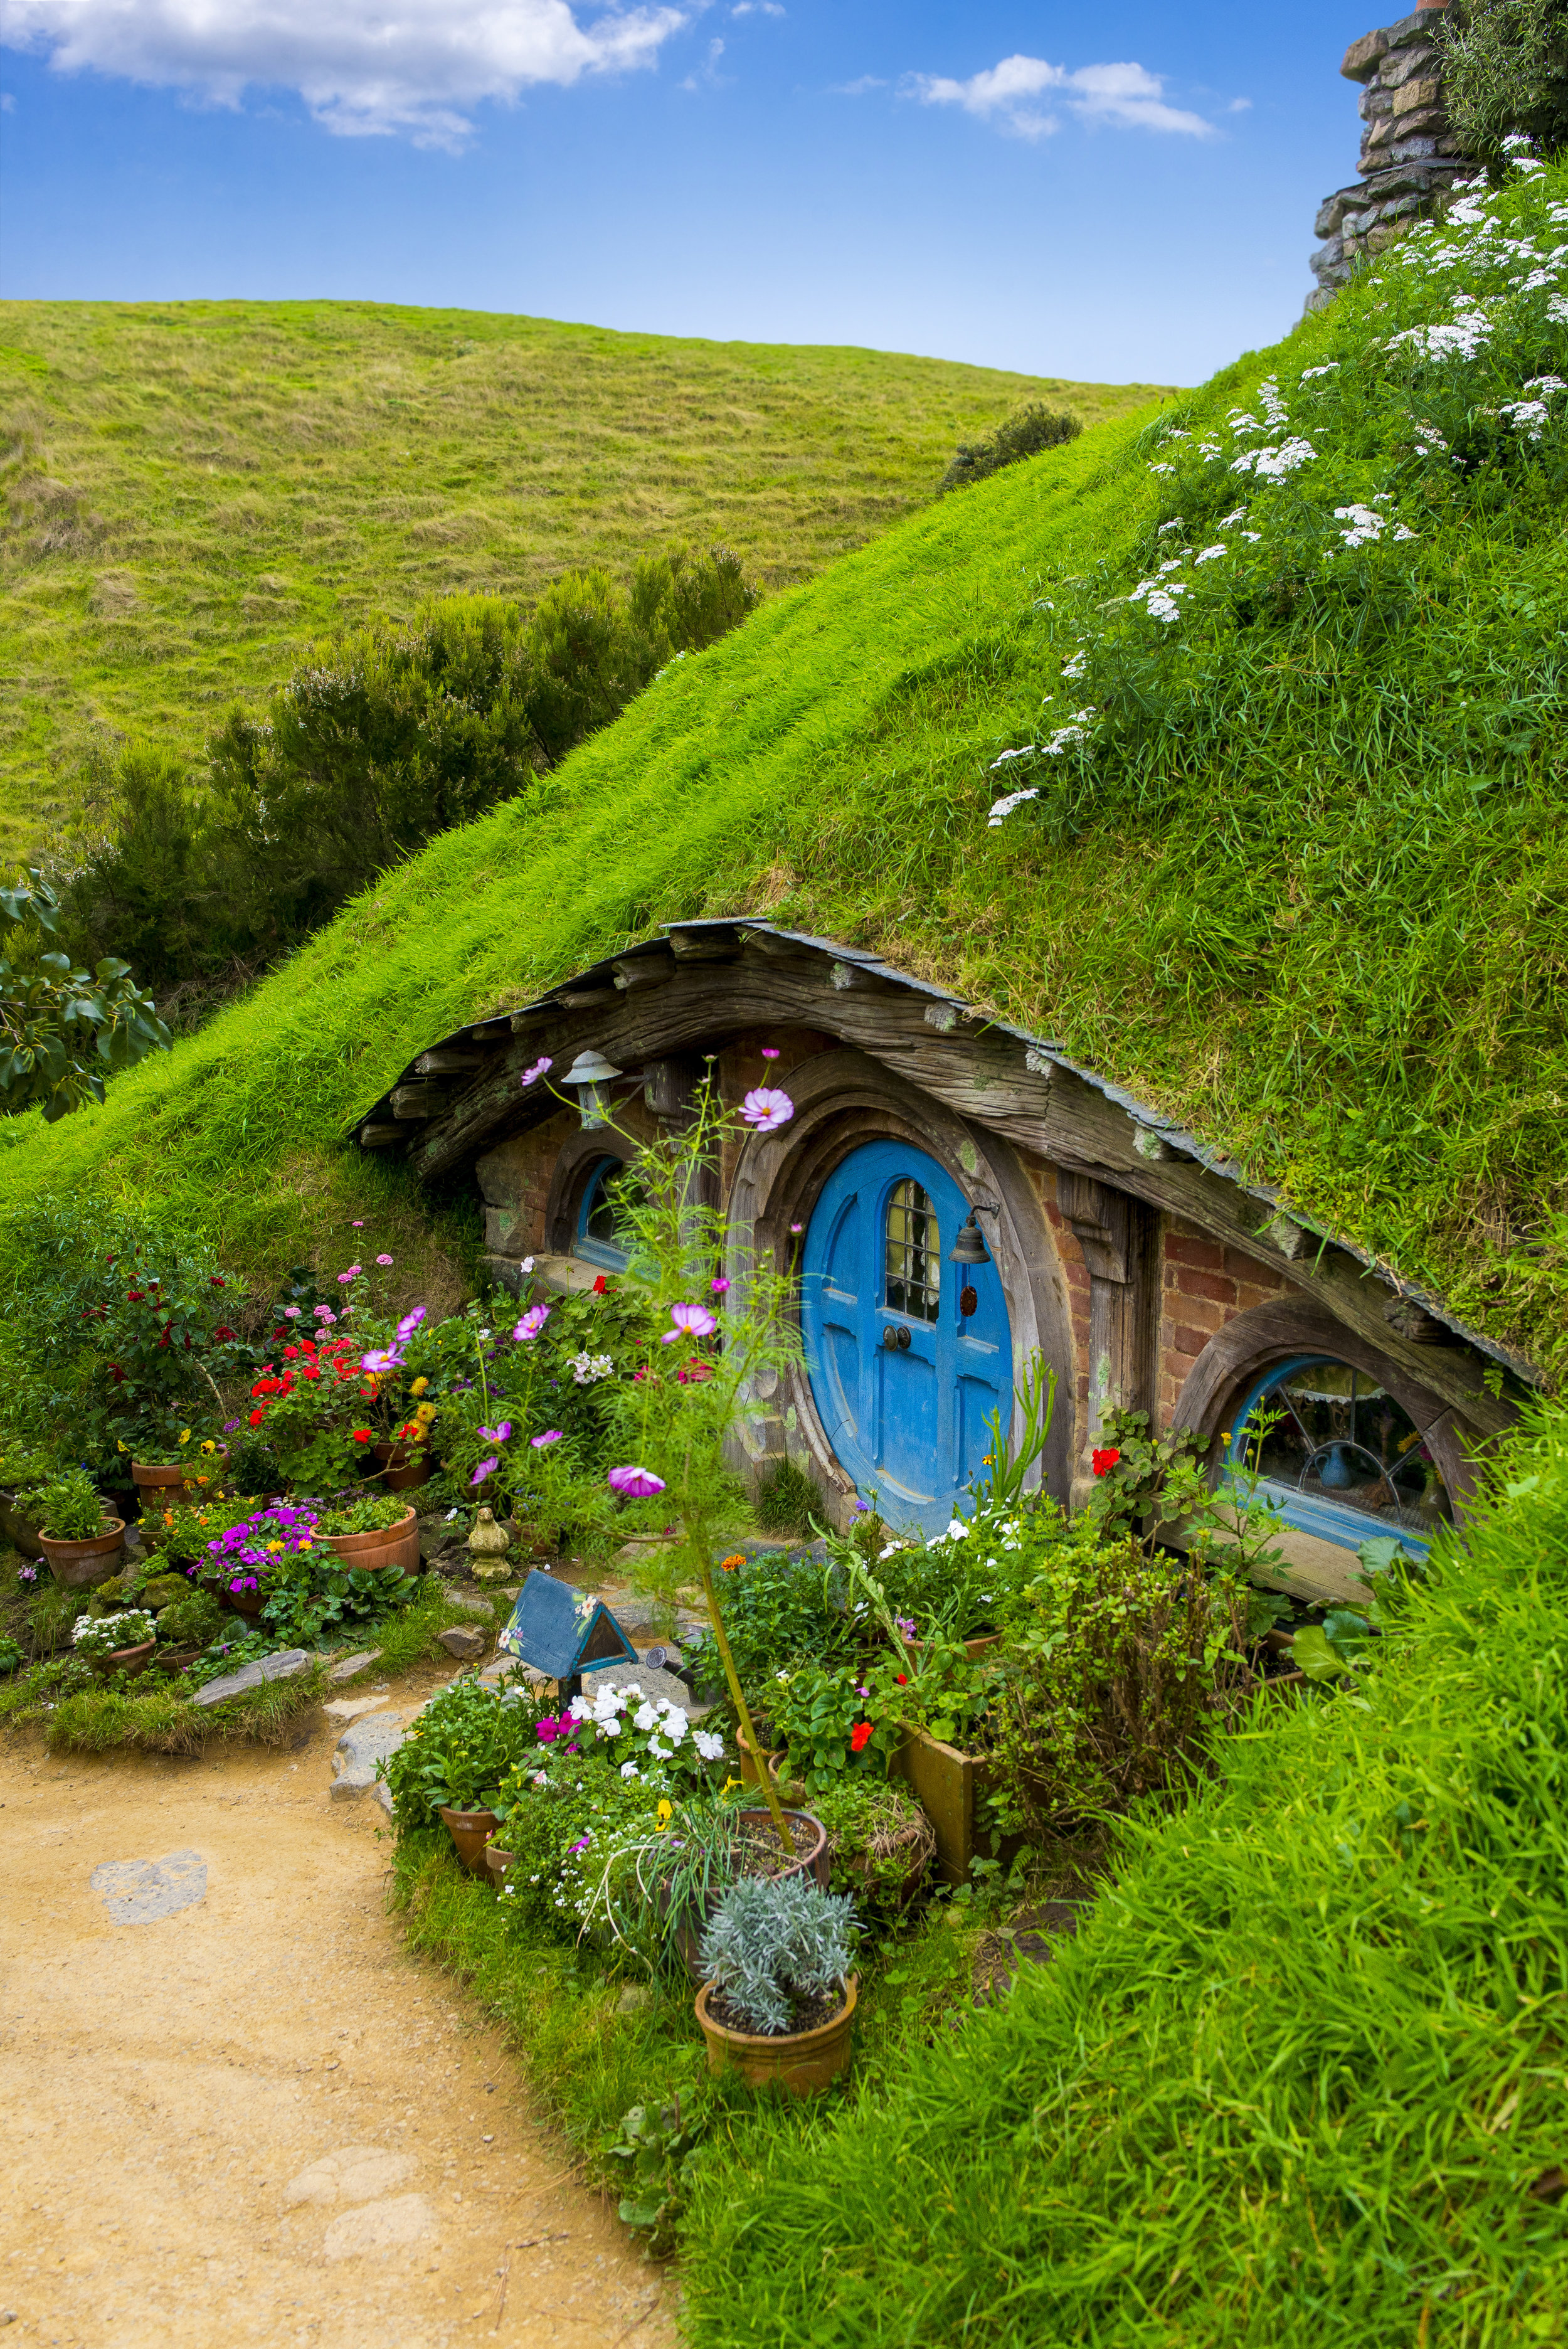 A Hobbit home on the Hobbiton movie set in Matamata. (Elise Marie Photography)